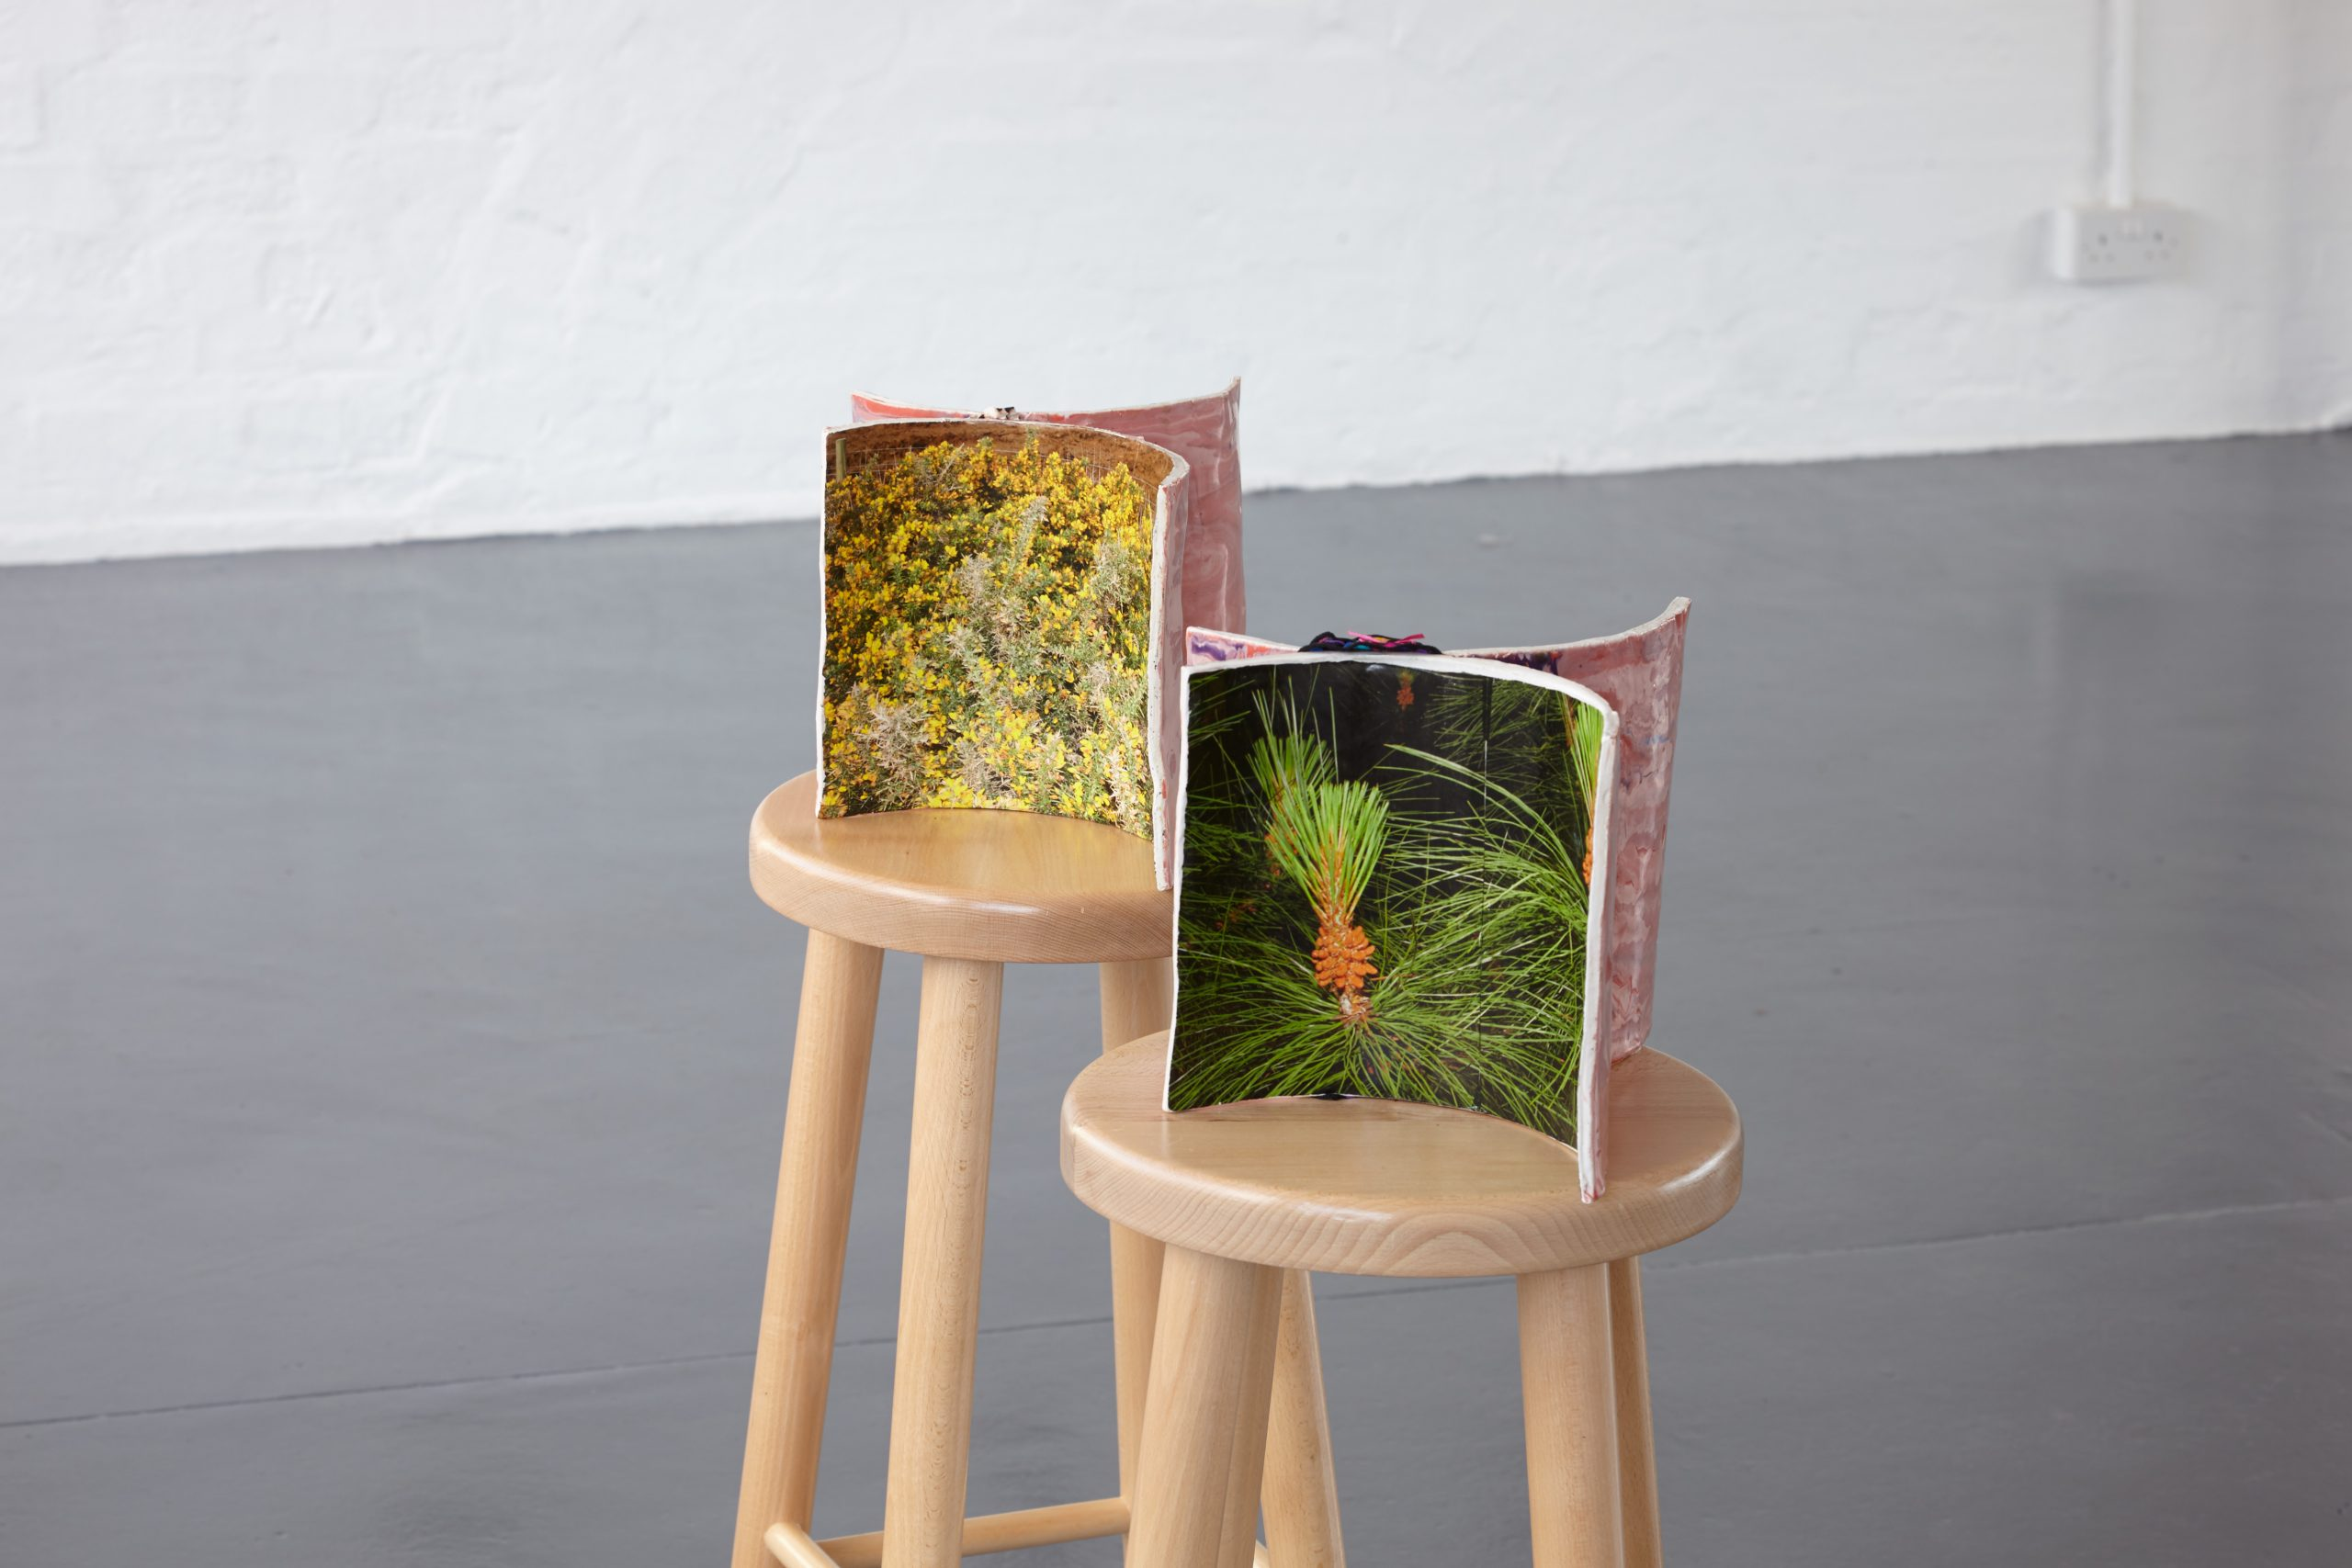 Two ceramic sculptures sit on stools.